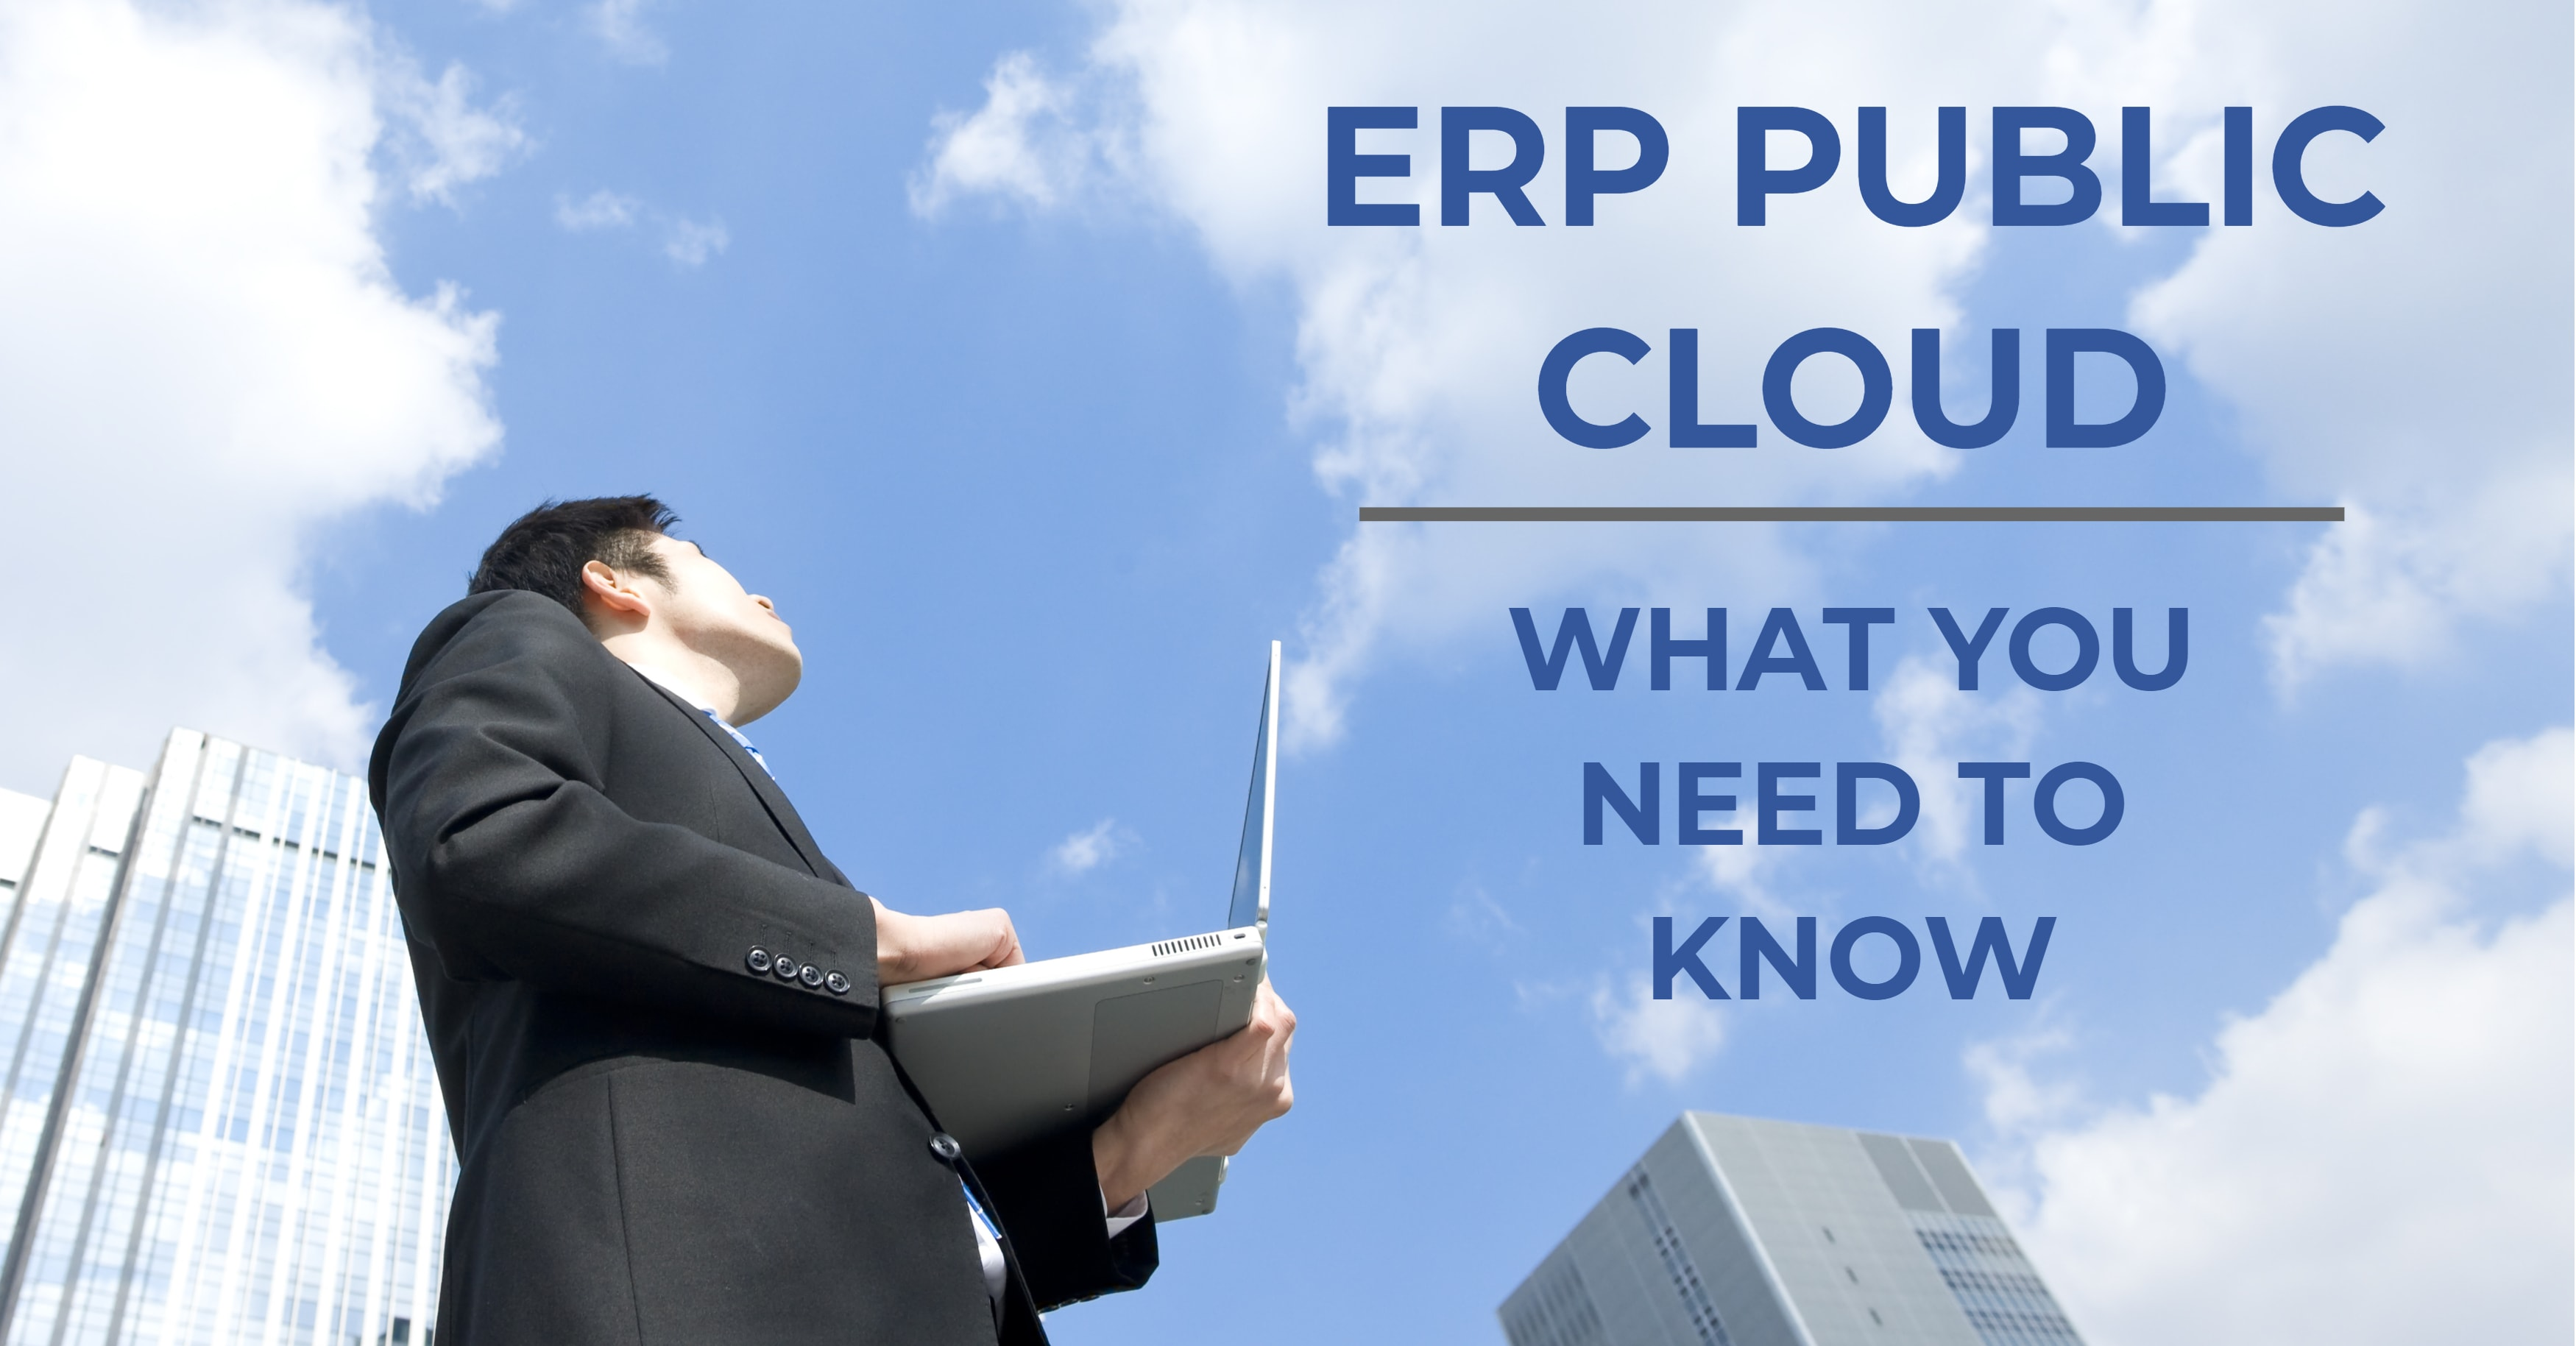 ERP Public Cloud: What You Need to Know